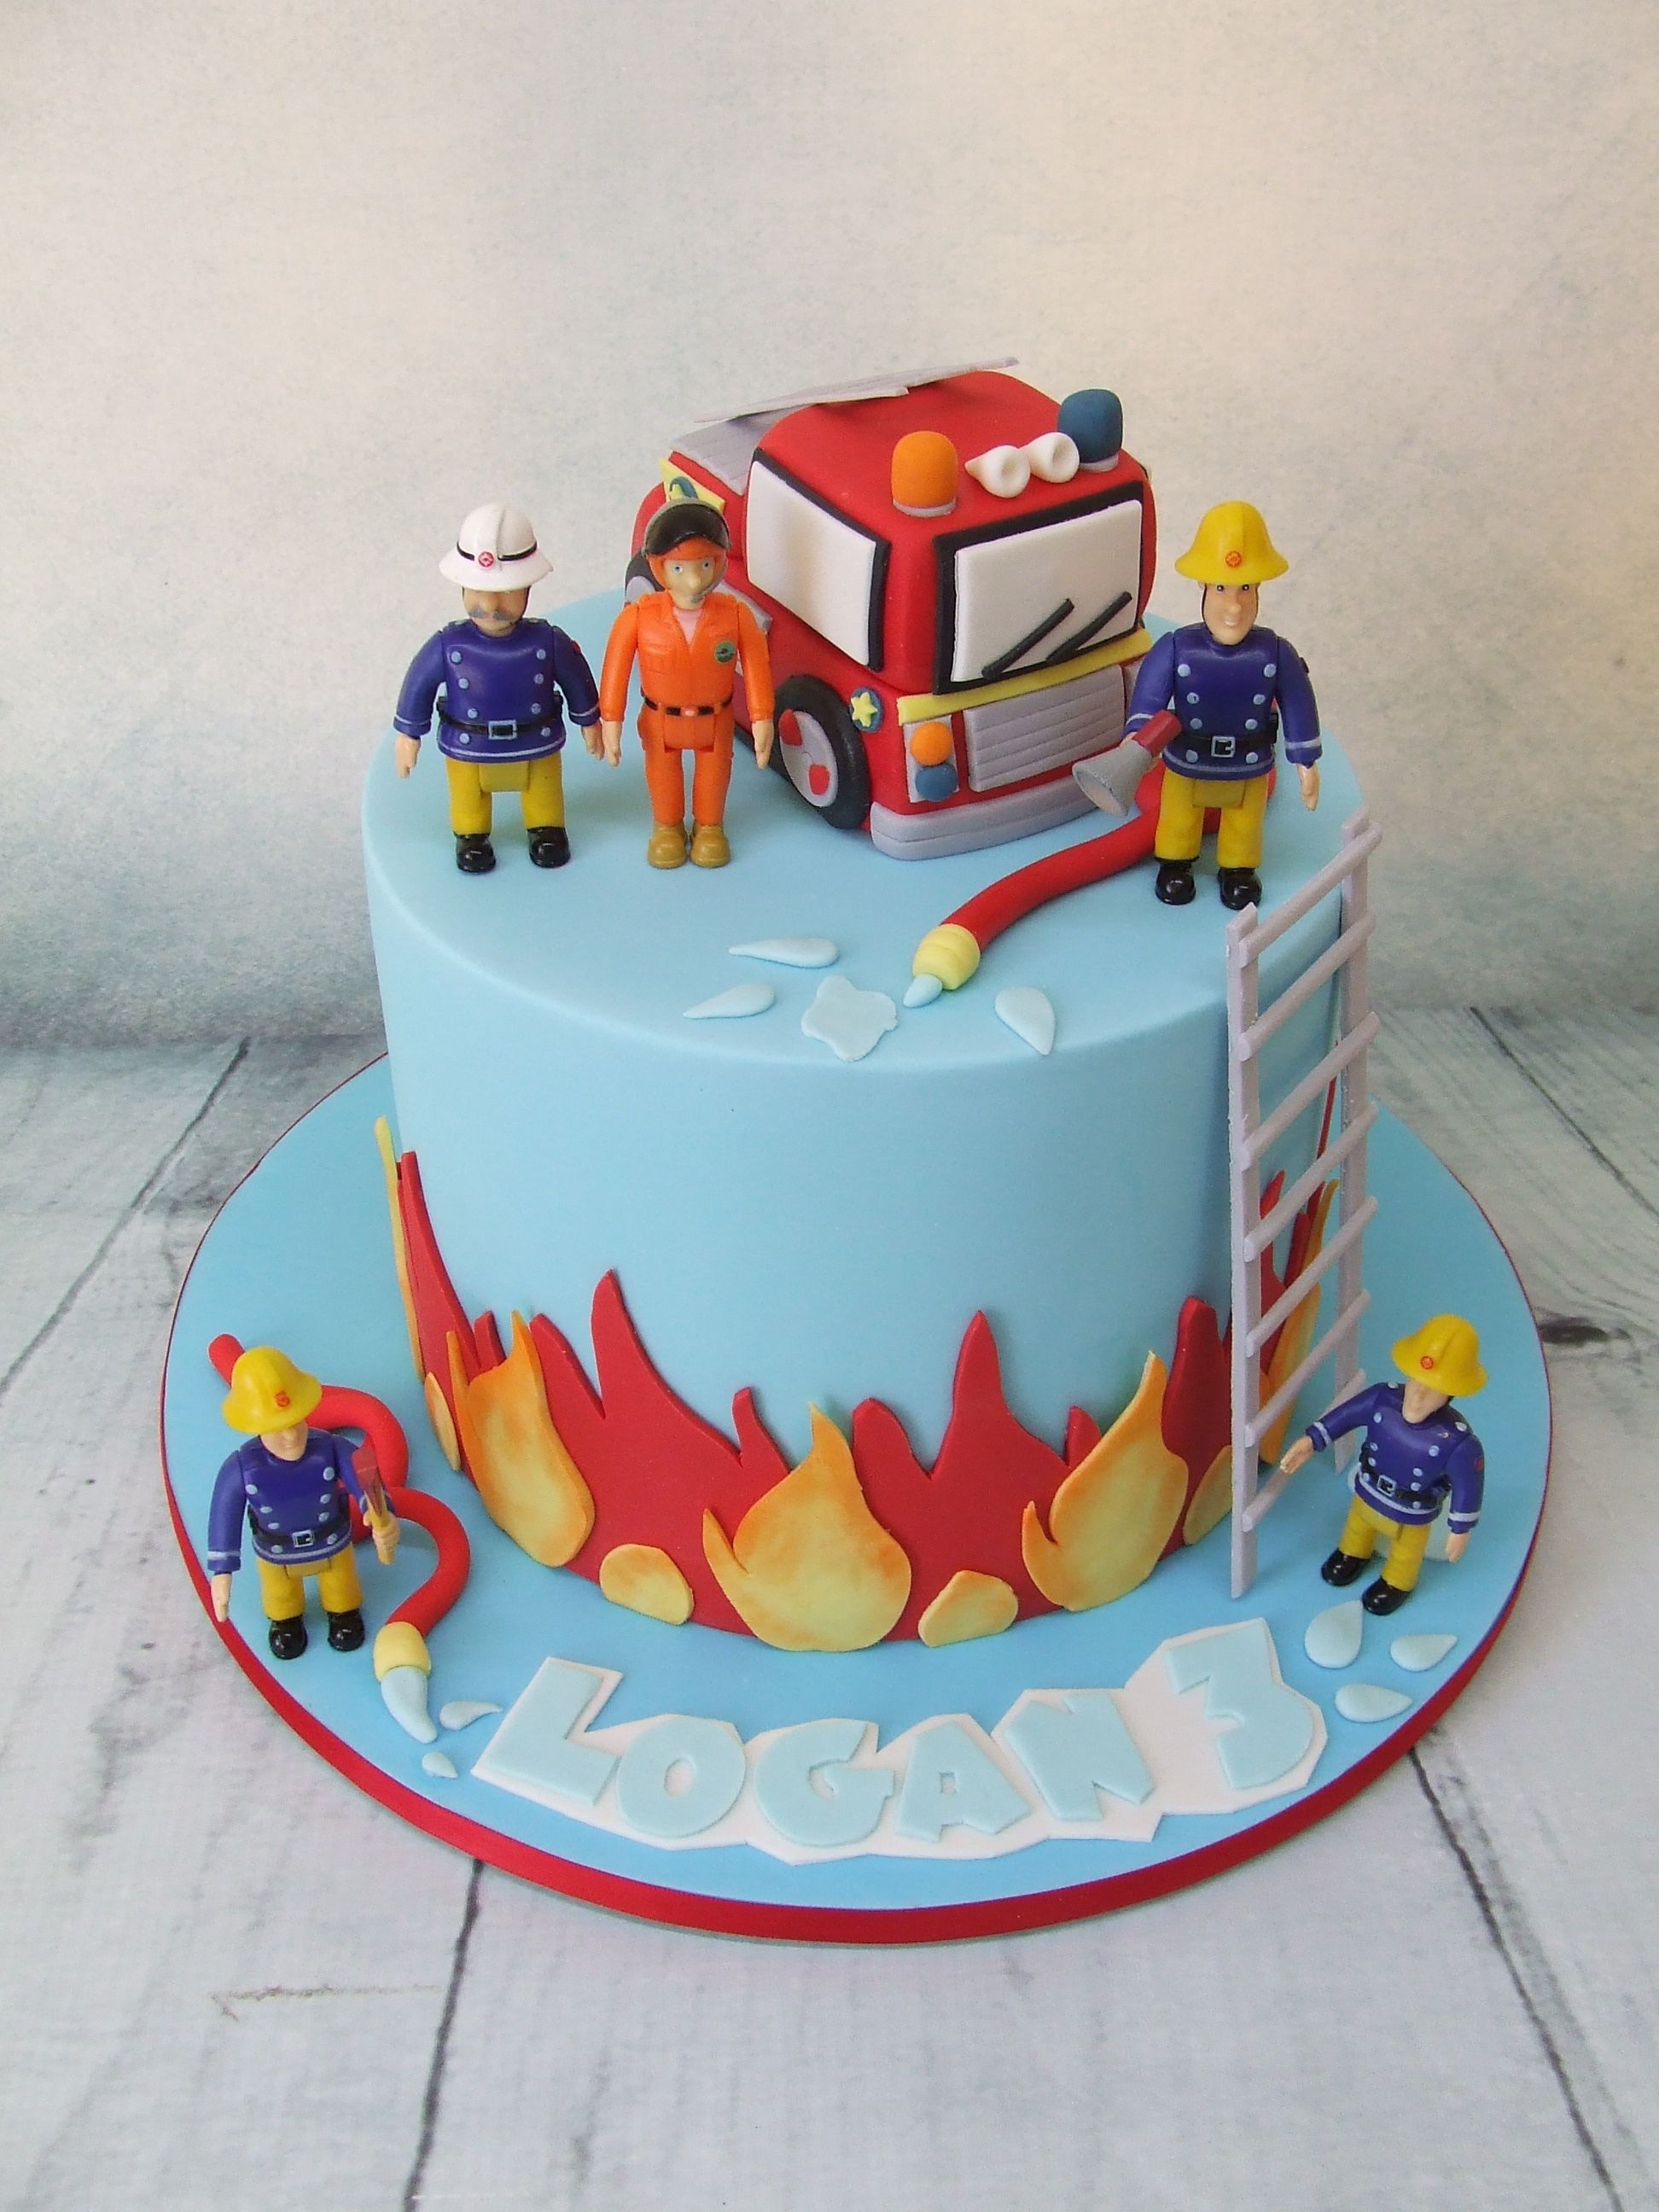 Terrific 21 Wonderful Image Of Fireman Birthday Cake With Images Funny Birthday Cards Online Alyptdamsfinfo